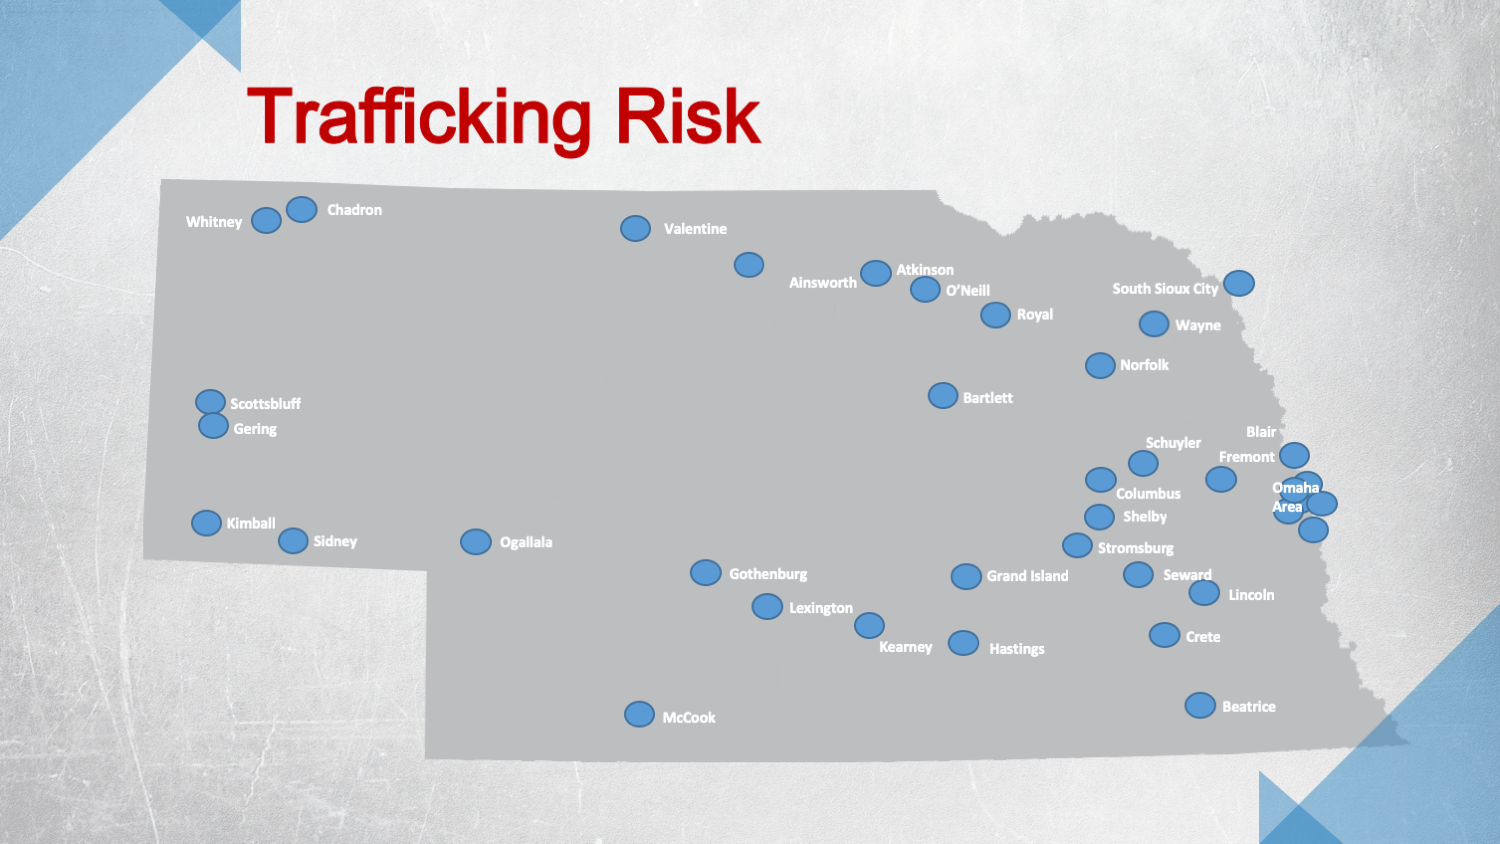 Map of Locations of Reports of Trafficking